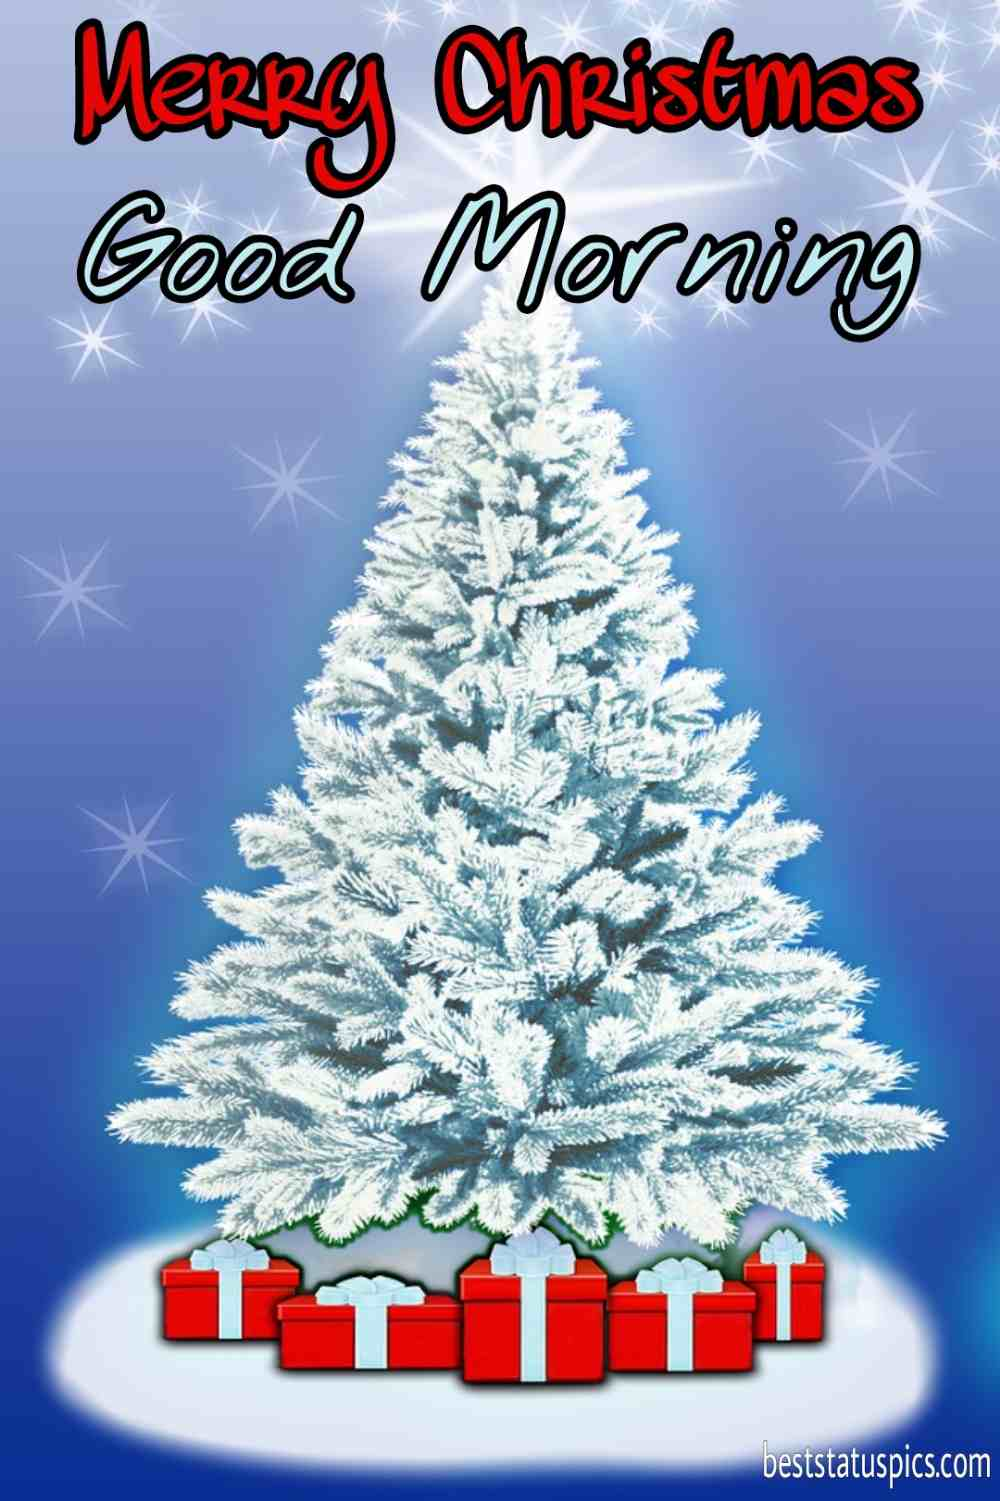 Good morning merry christmas eve 2022 greetings and images HD with xmas tree for Instagram story